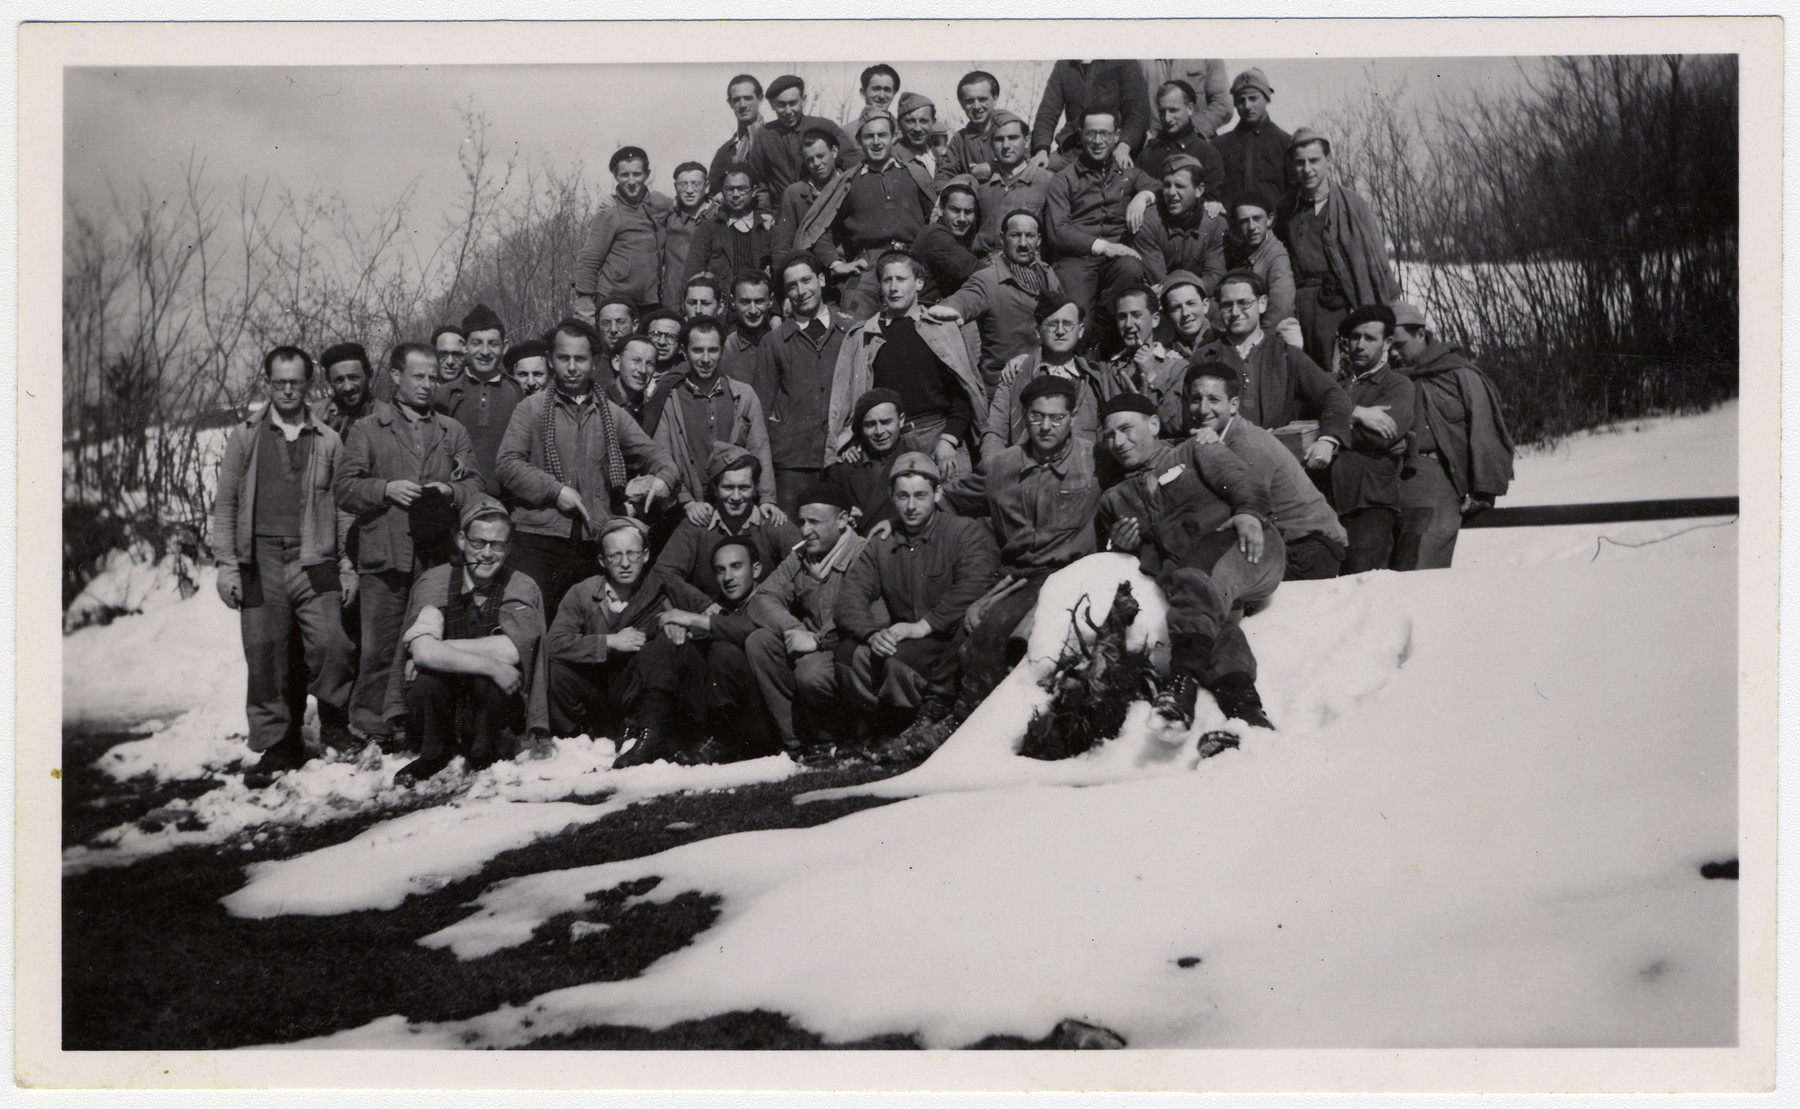 Group portrait of Jewish internees posing in the snow in an unidentified Swiss labor camp.  Max Schattner is pictured in the first standing row, second from the left.